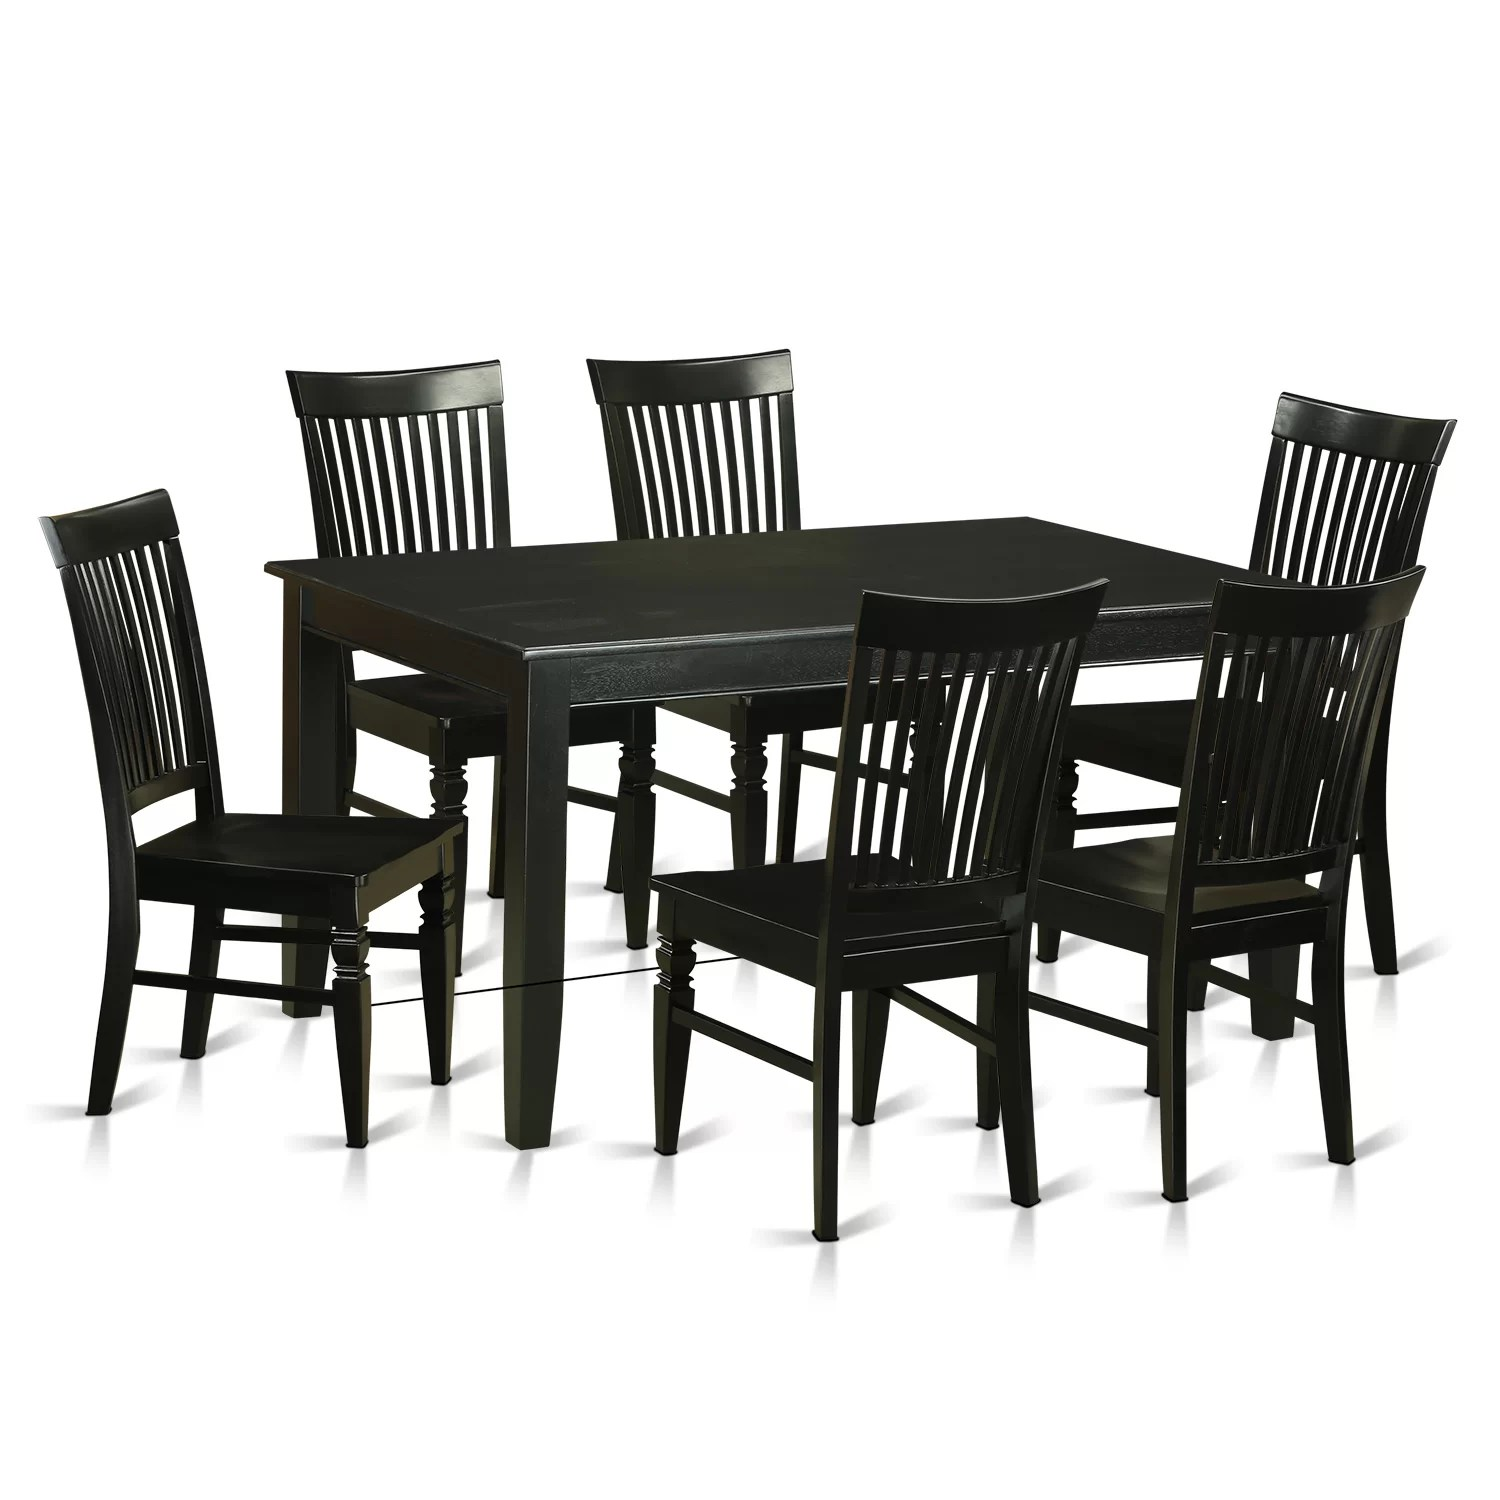 Wayfair Dining Chairs East West Dudley 7 Piece Dining Set Wayfair